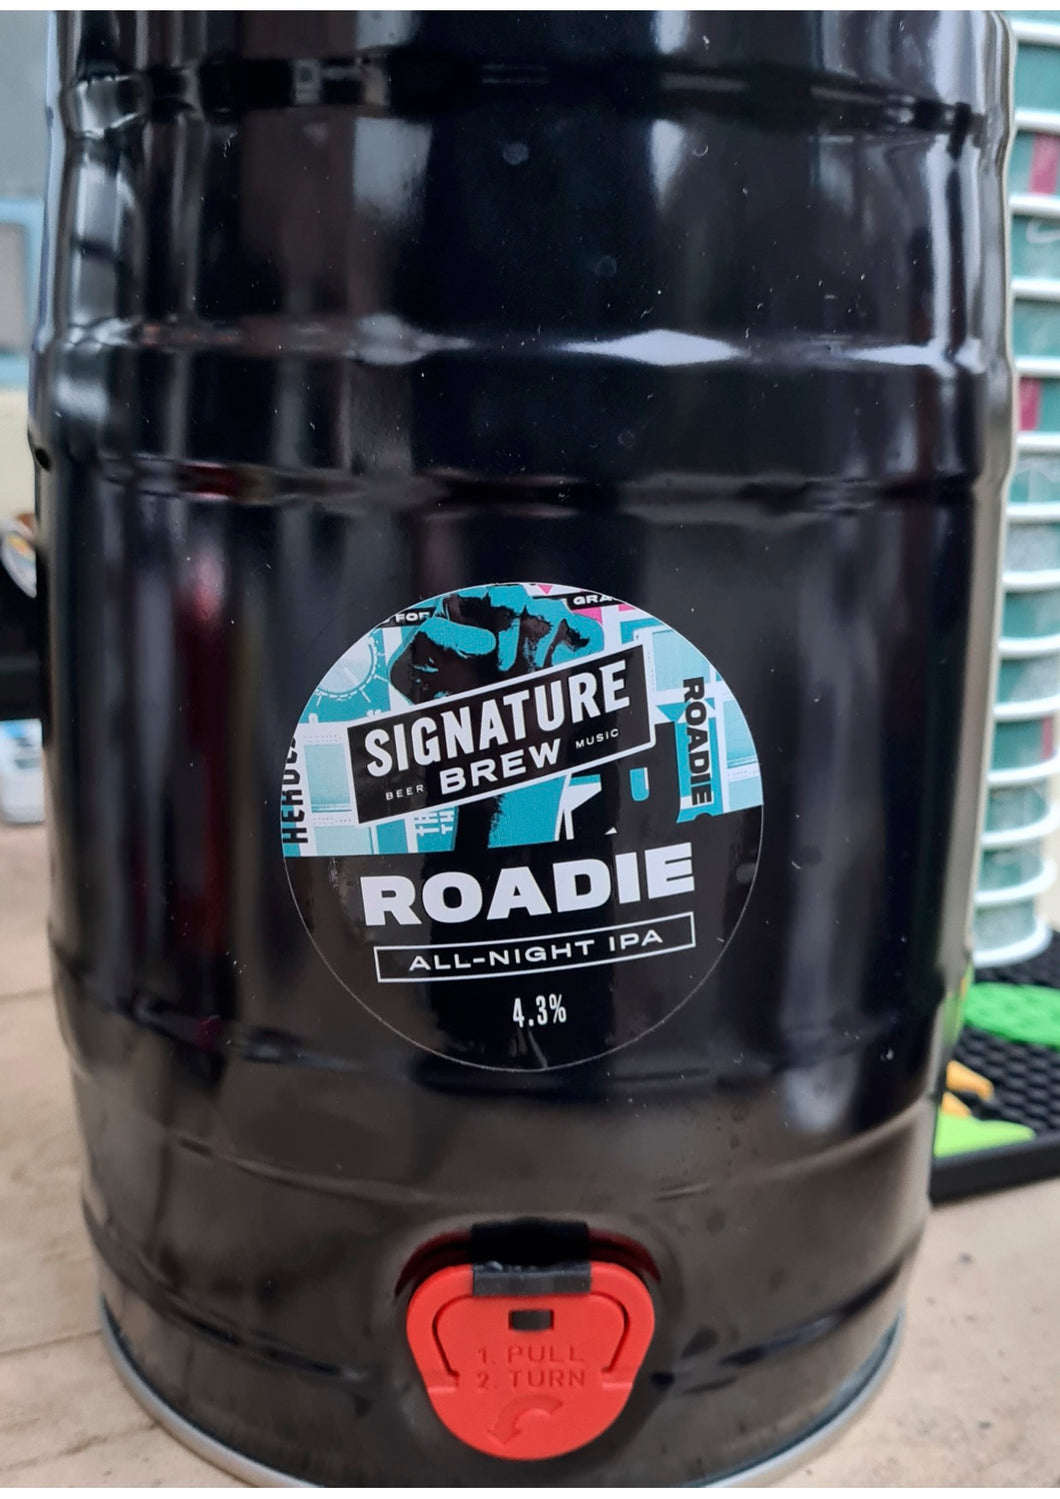 Signature Brew ROADIE ALL-NIGHT IPA - 4.3% - 5Ltr Mini-Keg